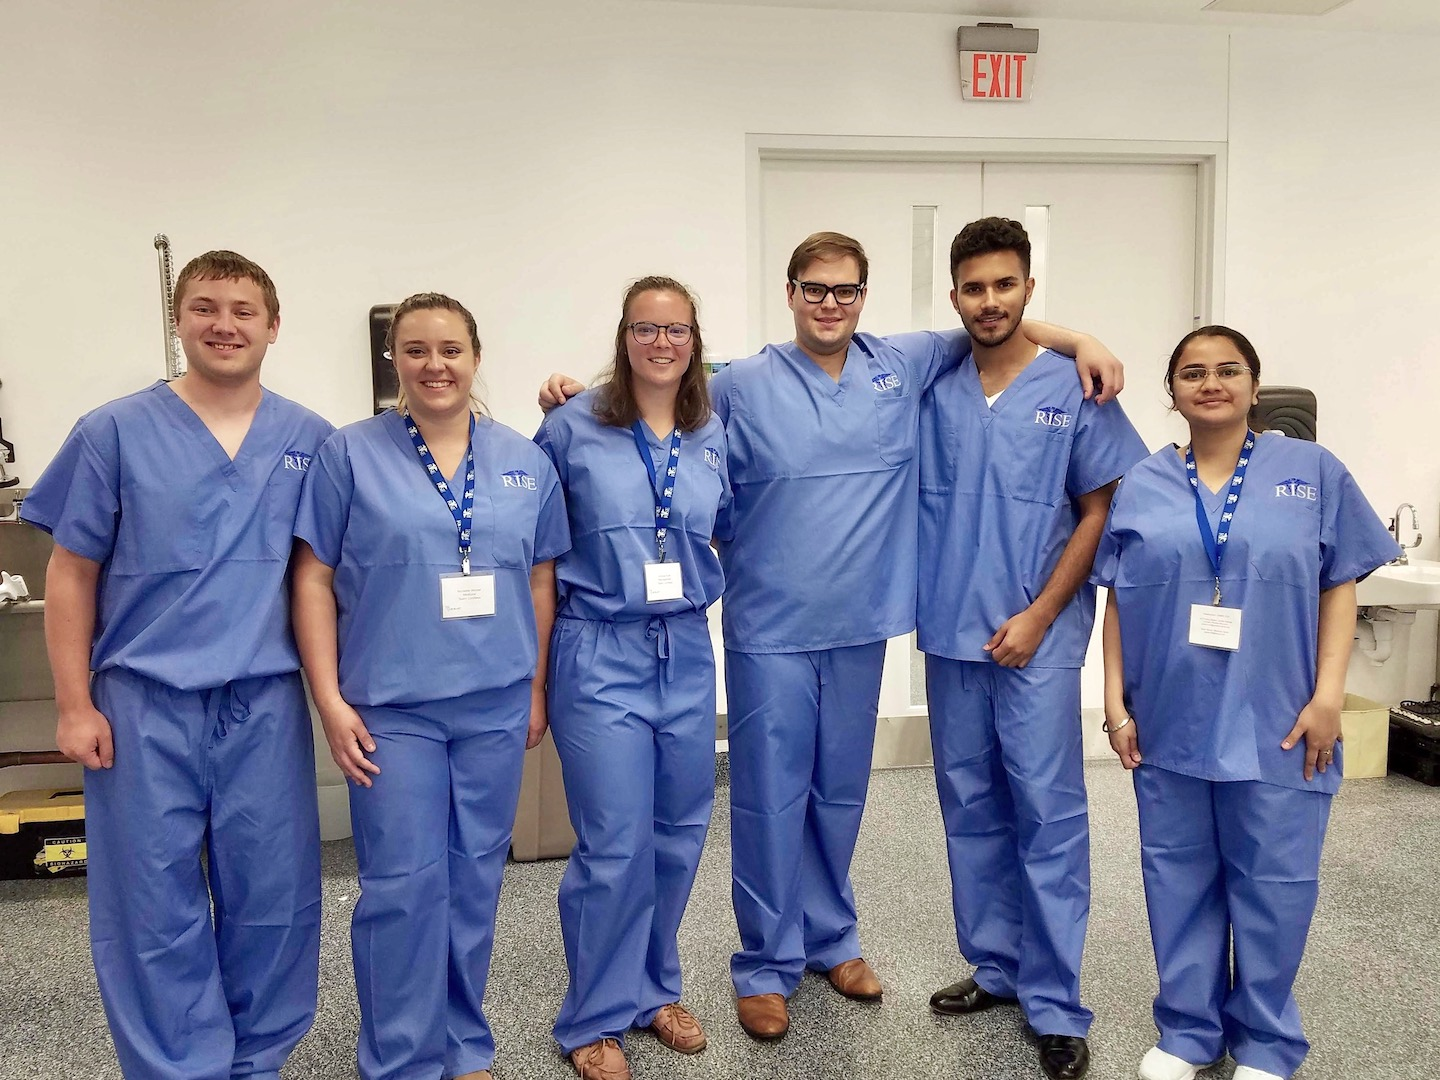 Members of the Limitless team, including Jacob Opalinski, a biomedical engineering student; Nicolette Winder, an M.D. candidate; Andrea Kraft, an M.B.A./M.P.H. candidate; Blake Kruger, an M.D. candidate; Arnav Matta, an innovation management student; and Prerna Pant, Ph.D. candidate, biomedical engineering. (University at Buffalo photo)